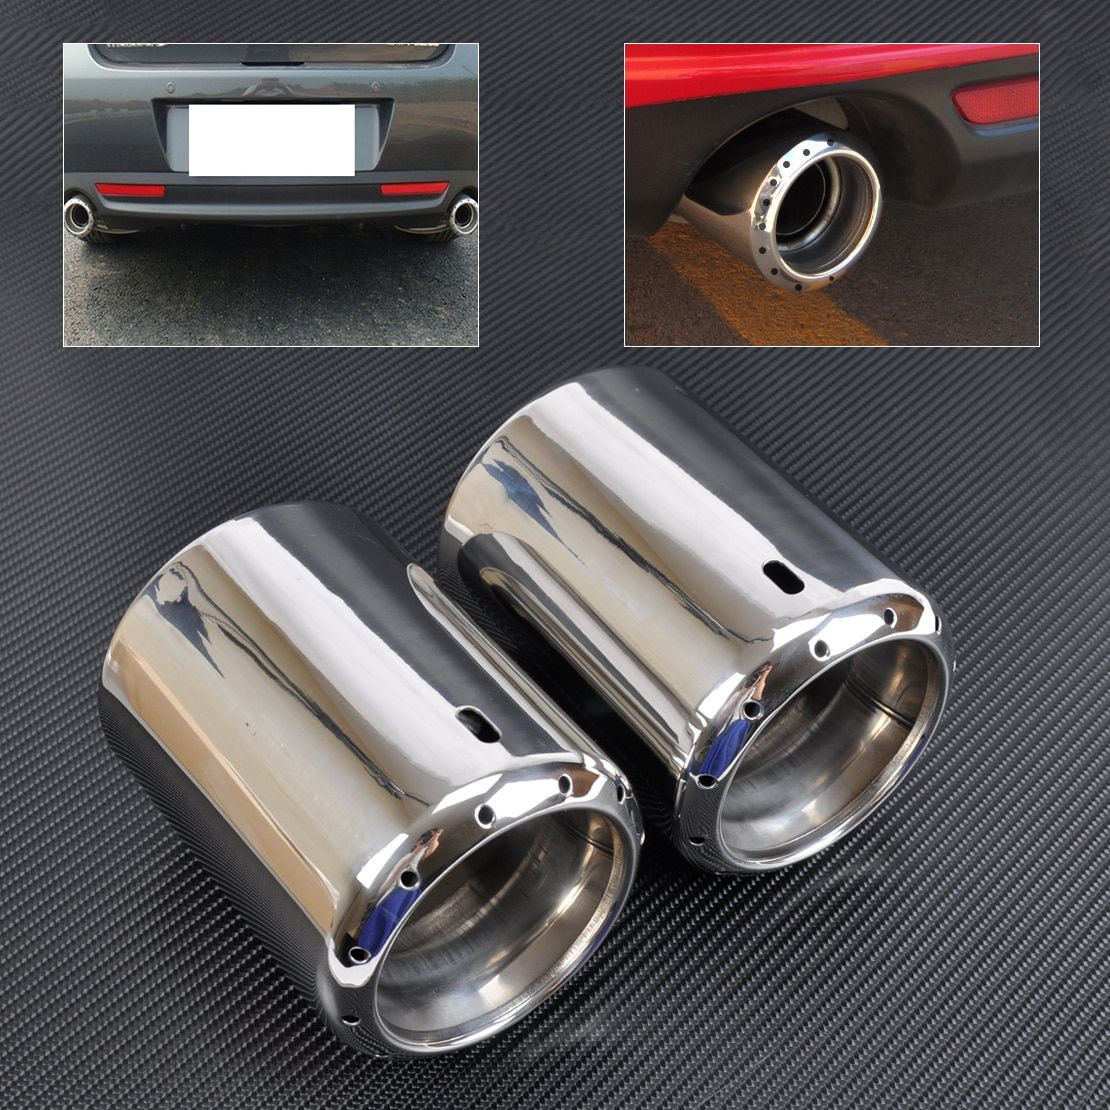 DWCX 2x NEW STAINLESS STEEL EXHAUST TAIL REAR MUFFLER TIP PIPE For 2009 - 2012 2013 2014 Mazda 6 ATENZA 2013 2014 Mazda CX-5